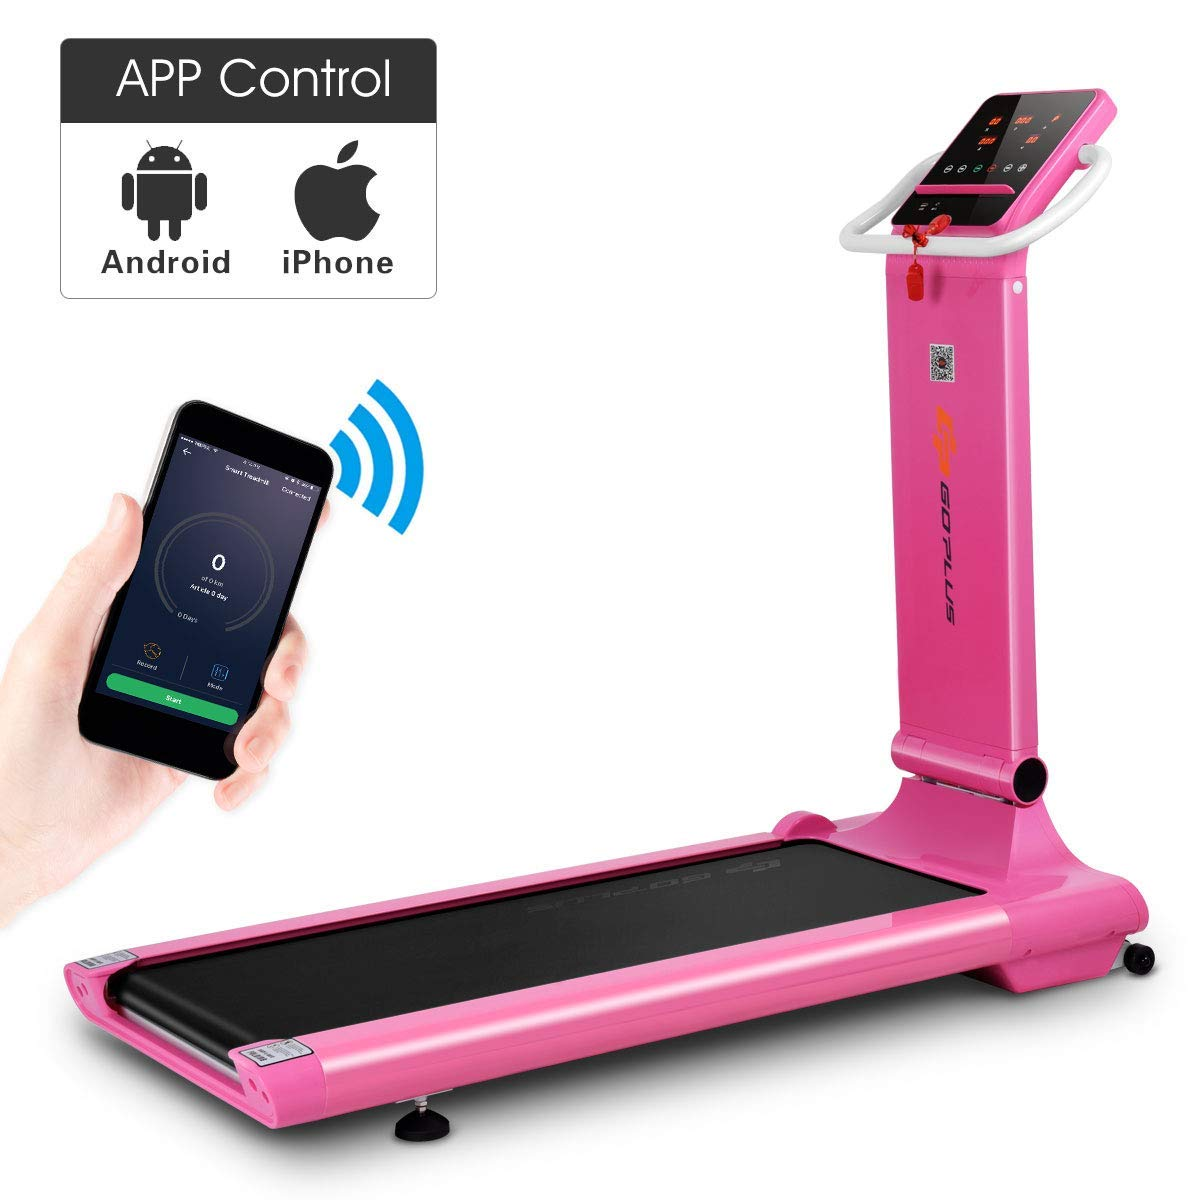 Goplus 1.5HP Electric Folding Treadmill Portable Motorized Running Machine Home Gym Cardio Fitness w/App (Pink) by Goplus (Image #1)